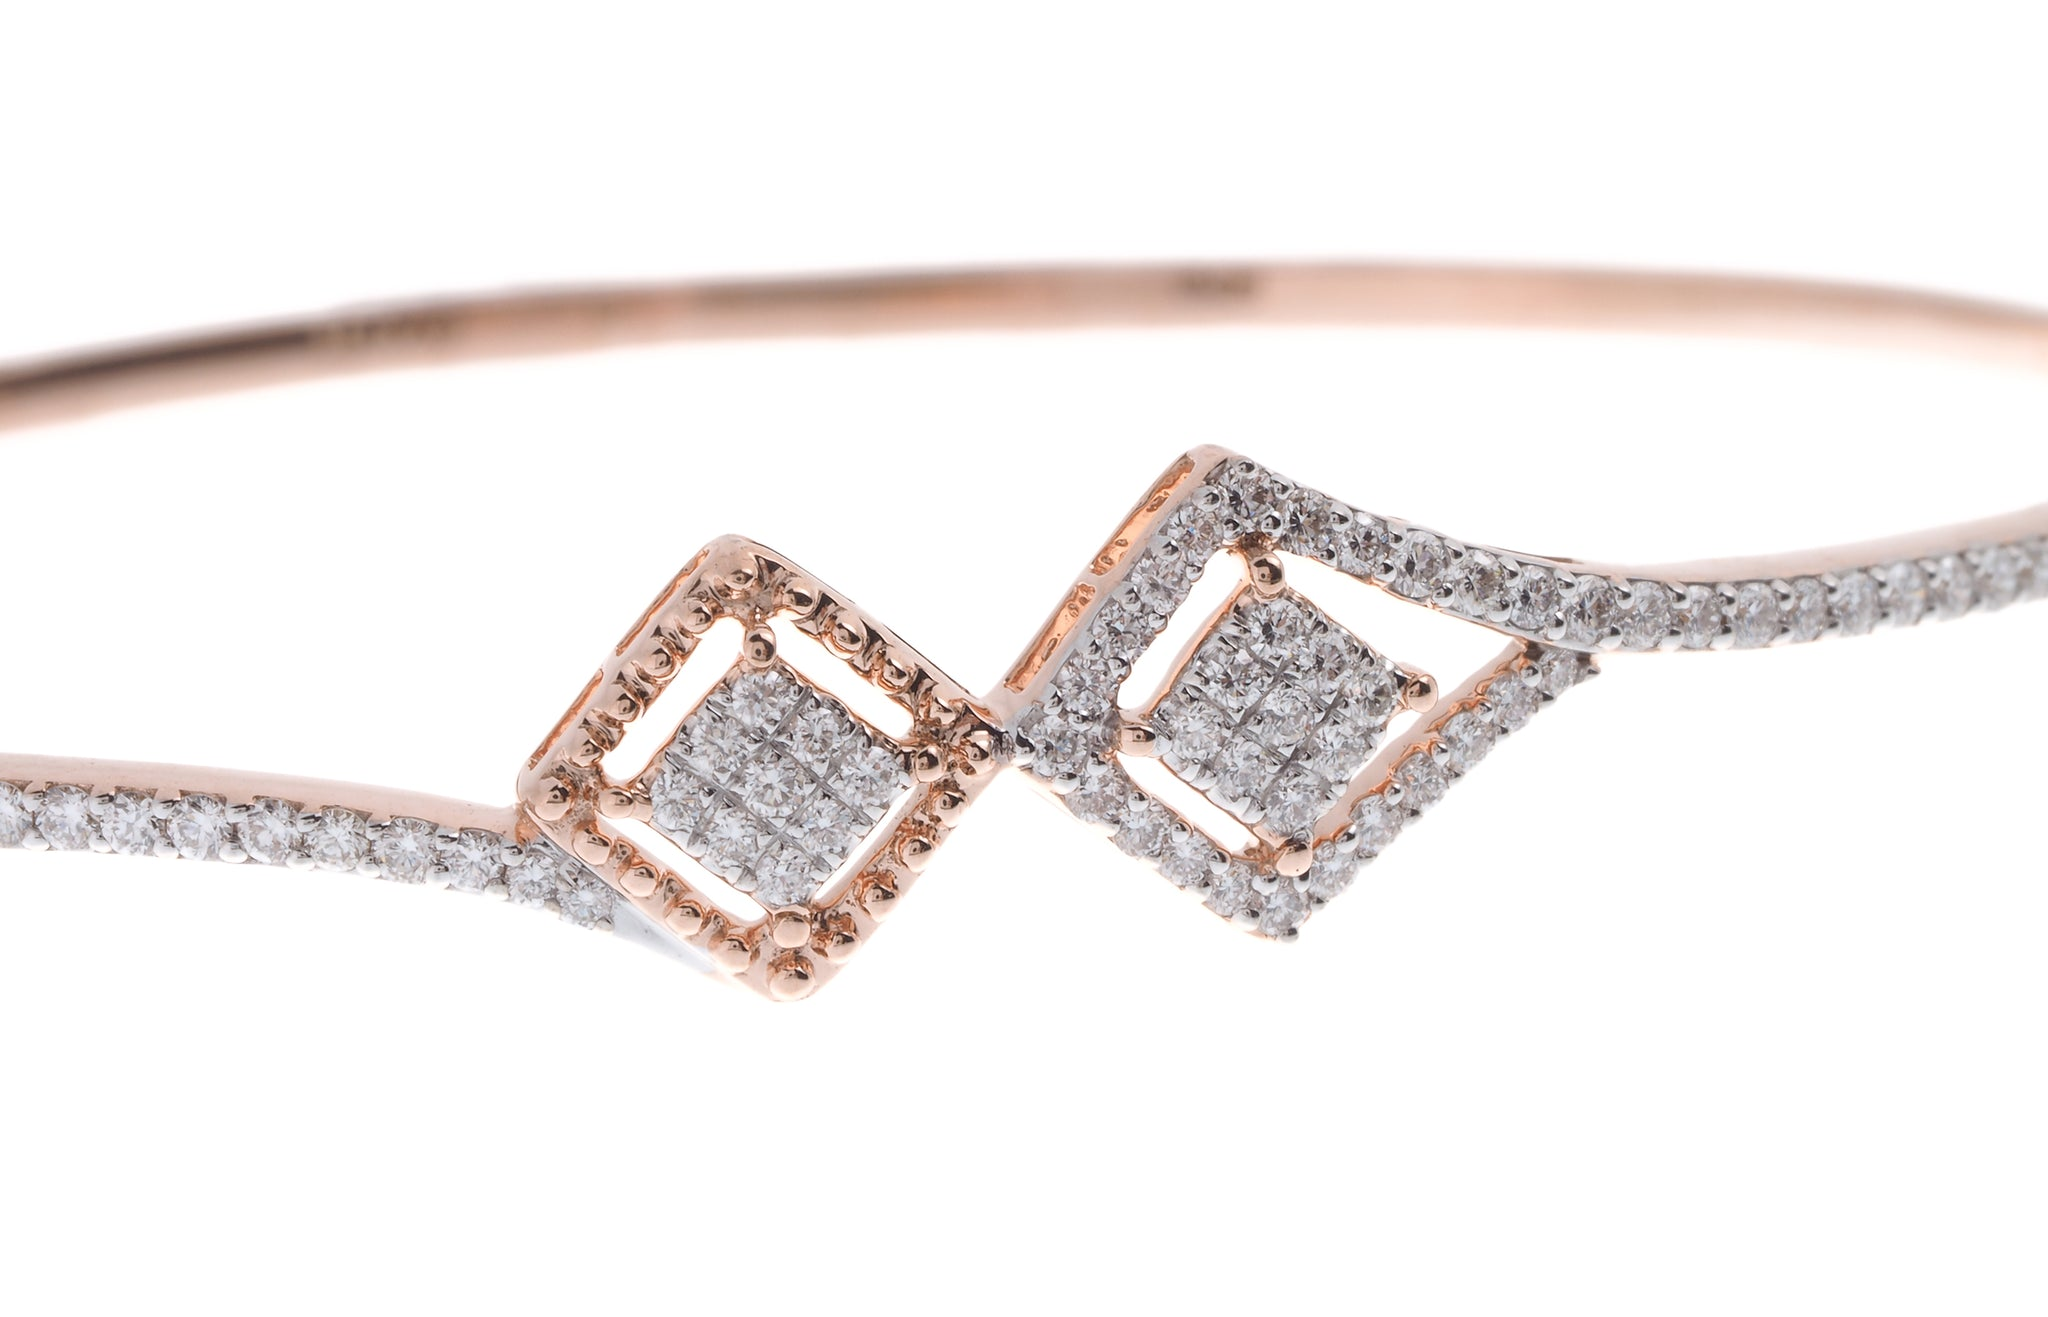 18ct Rose Gold Diamond Bangle with clasp (MCS2731) - Close Up